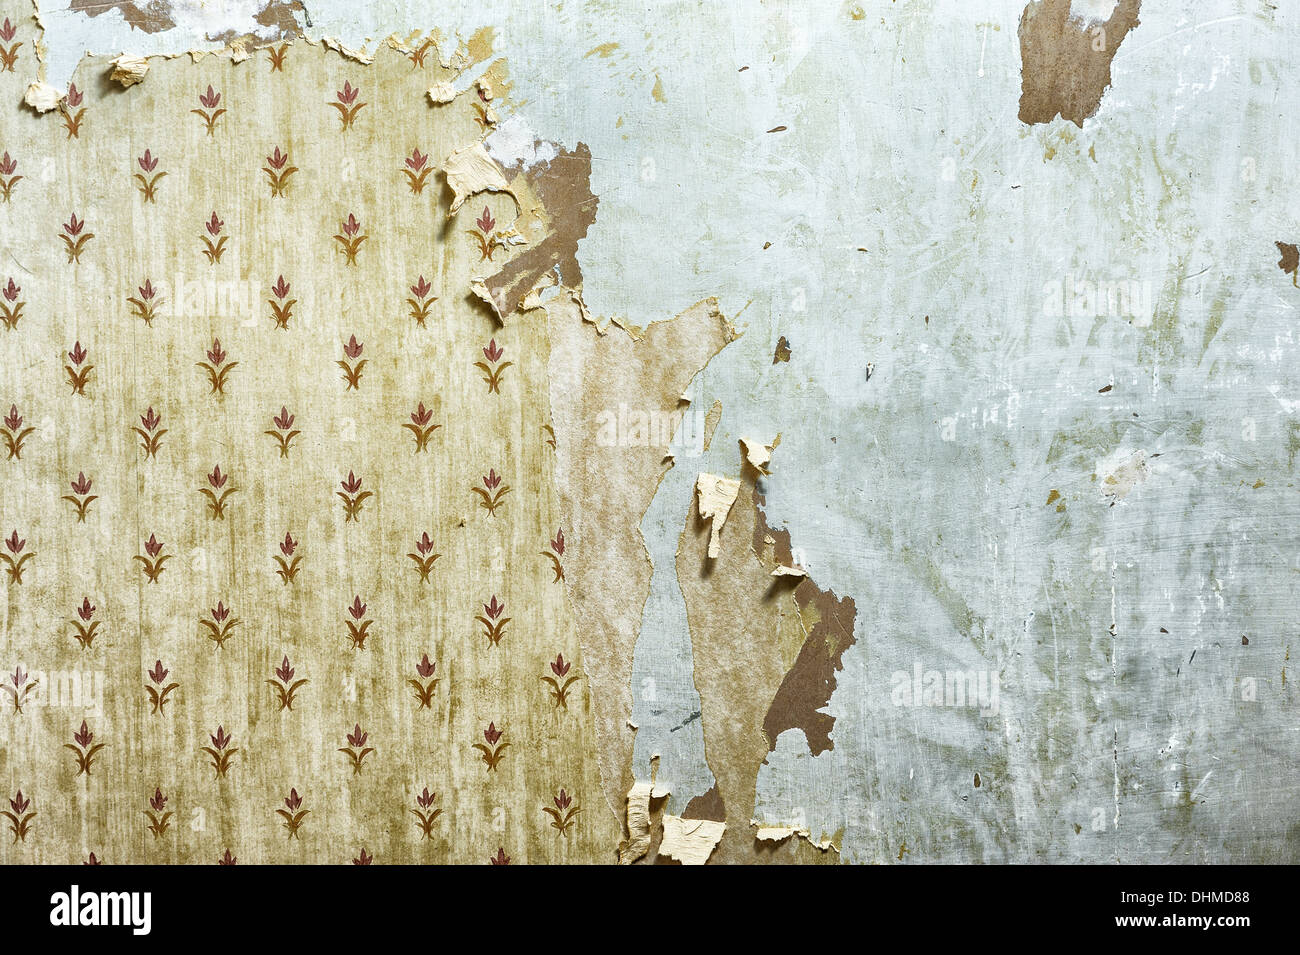 Wallpaper peeling off a wall during home decoration. Image could also suggest disuse or dilapidation, renovation, improvement - Stock Image